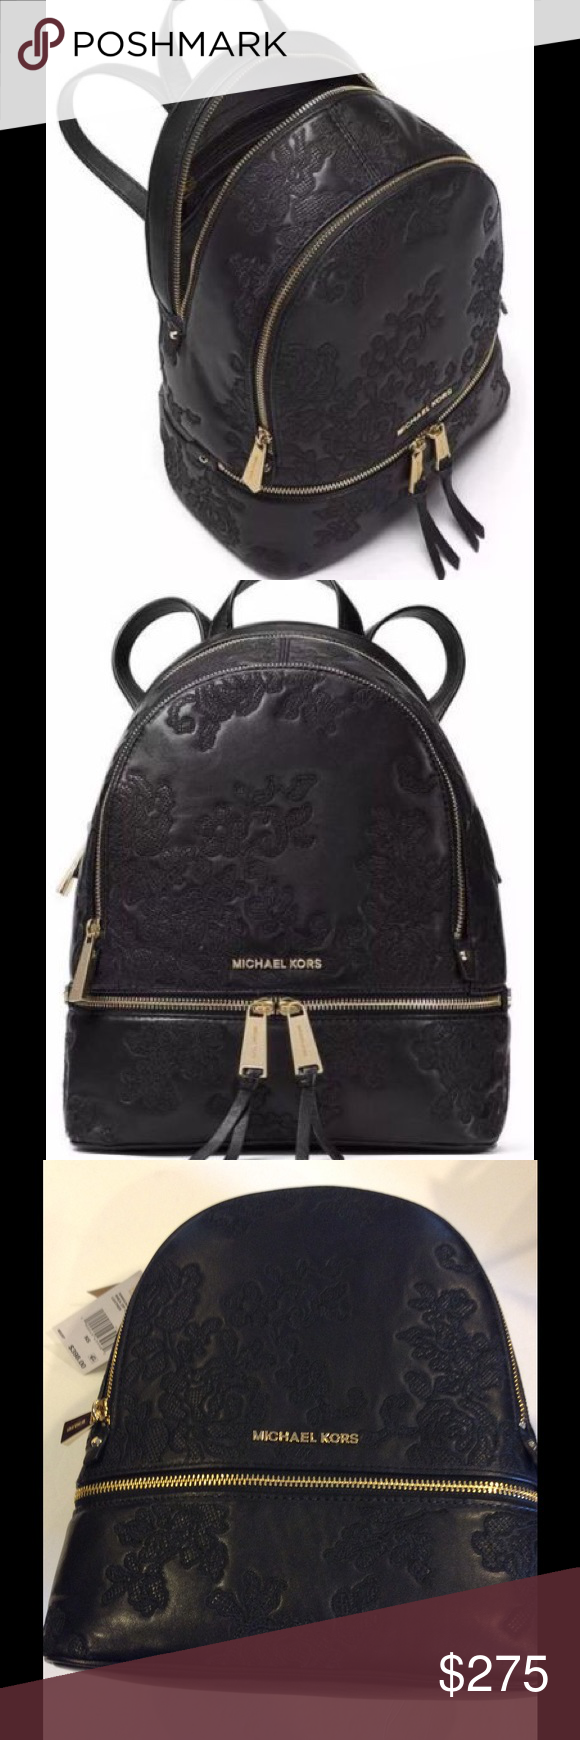 50024c7ba513 FINAL MARKDOWN Michael Kors Rhea Backpack Beautiful all leather with embroidered  lace. Medium size backpack